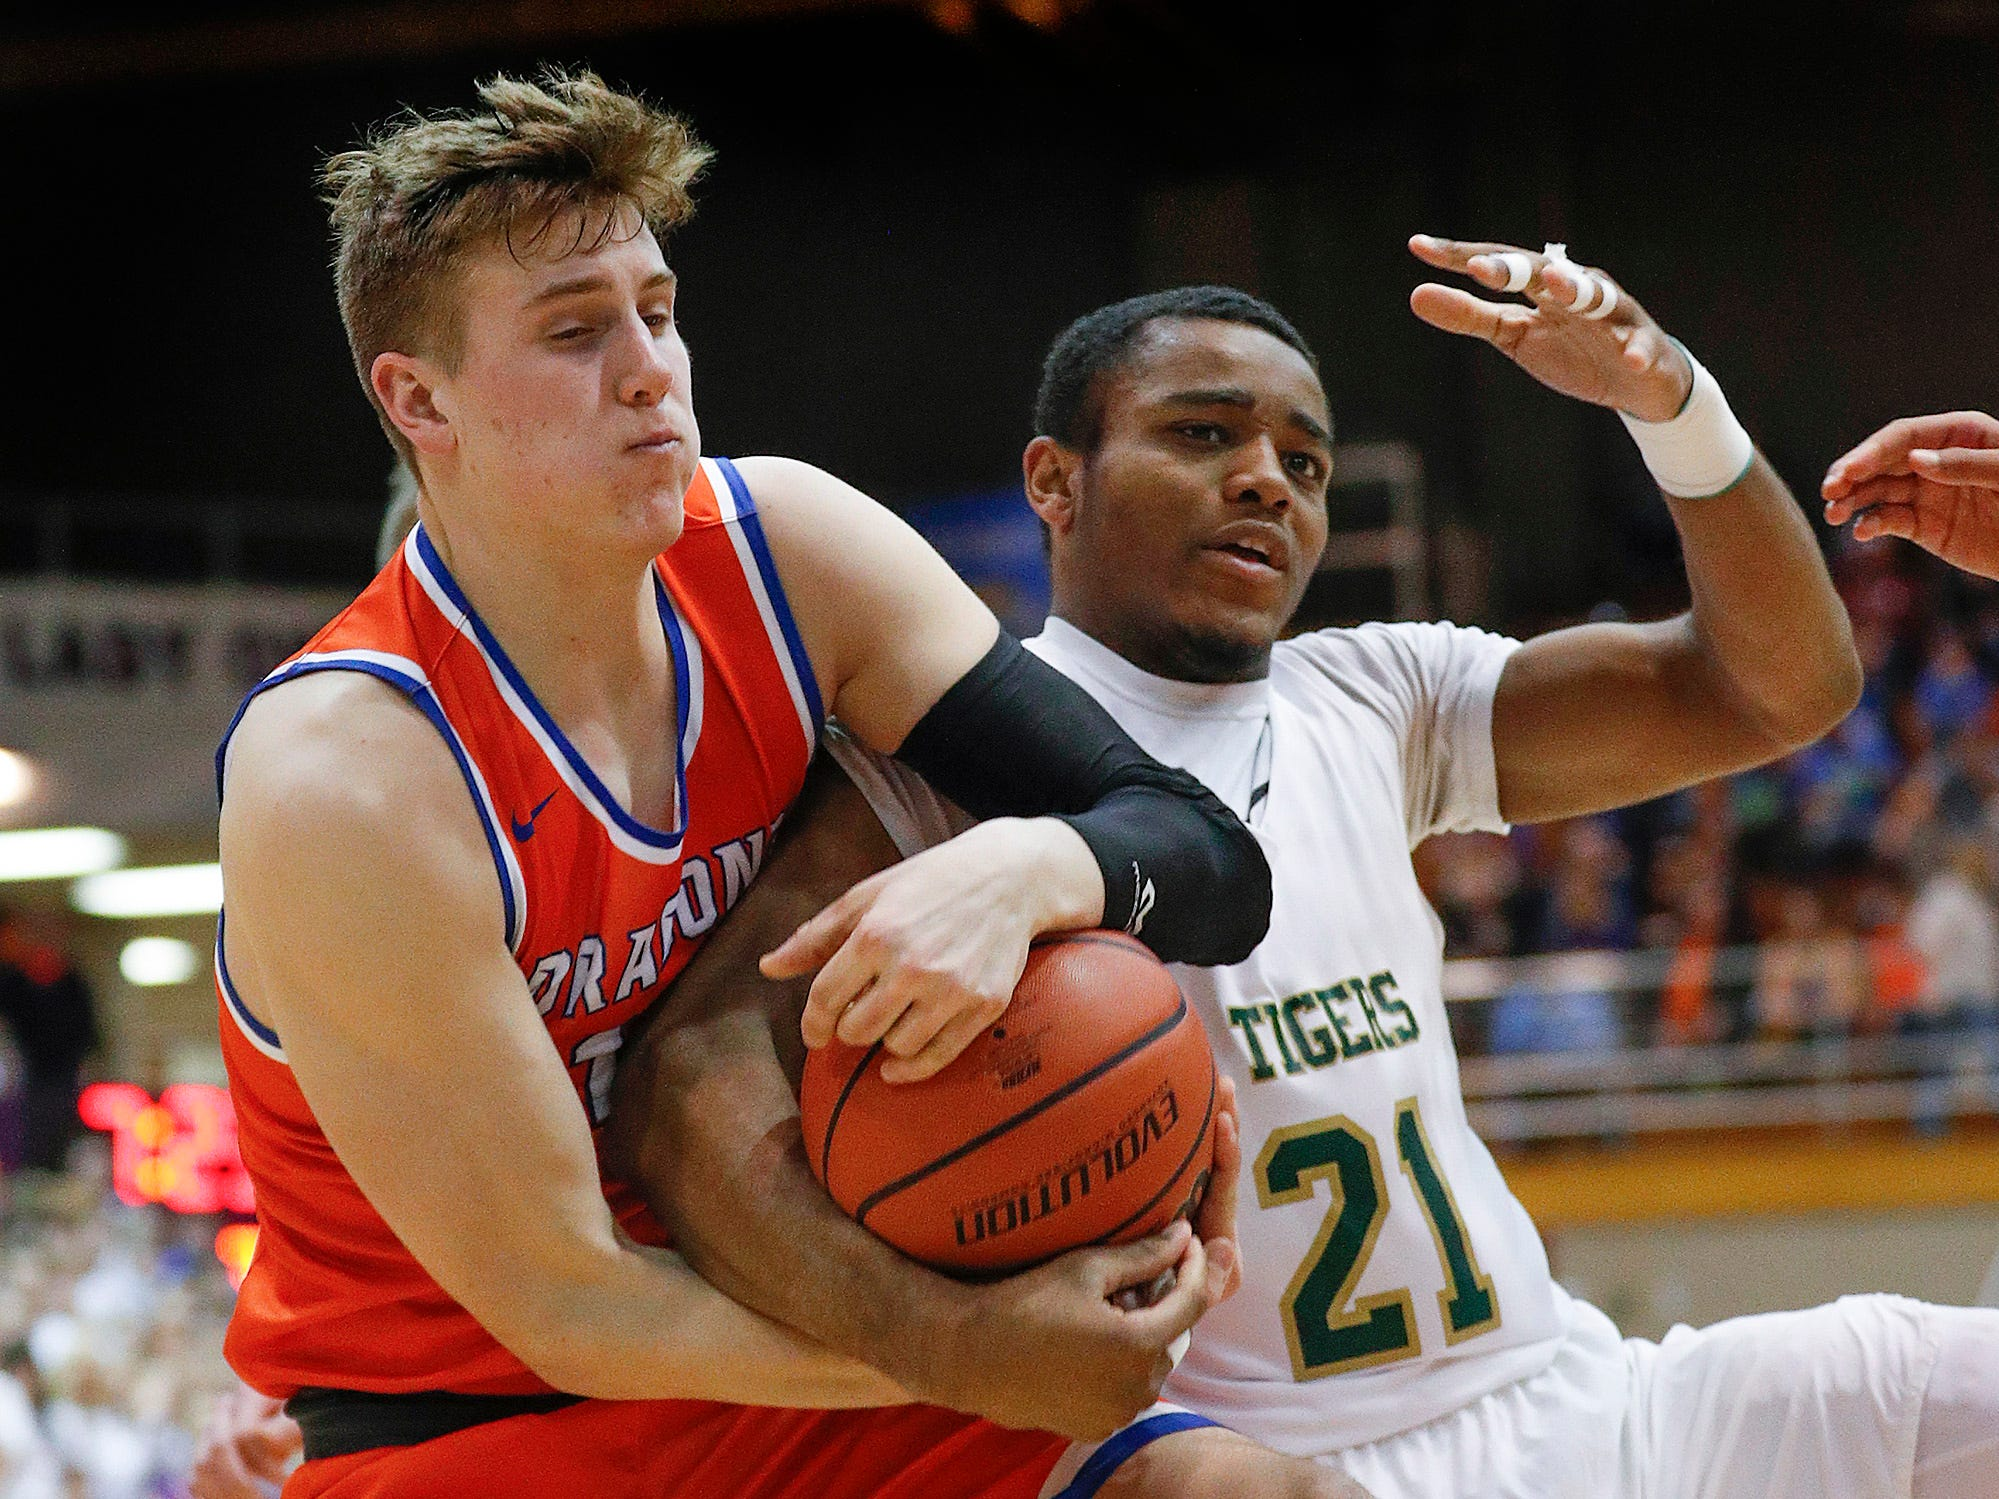 Silver Creek Dragons Jack Hawkins (14) and Crispus Attucks Tigers Courtney Radford (21) fight for a rebound in the second half of their IHSAA boys' Semi-State basketball game at Seymour High School gym in Seymour IN, on Saturday, Mar. 16, 2019. The Silver Creek Dragons defeated the Crispus Attucks Tigers 72-69.